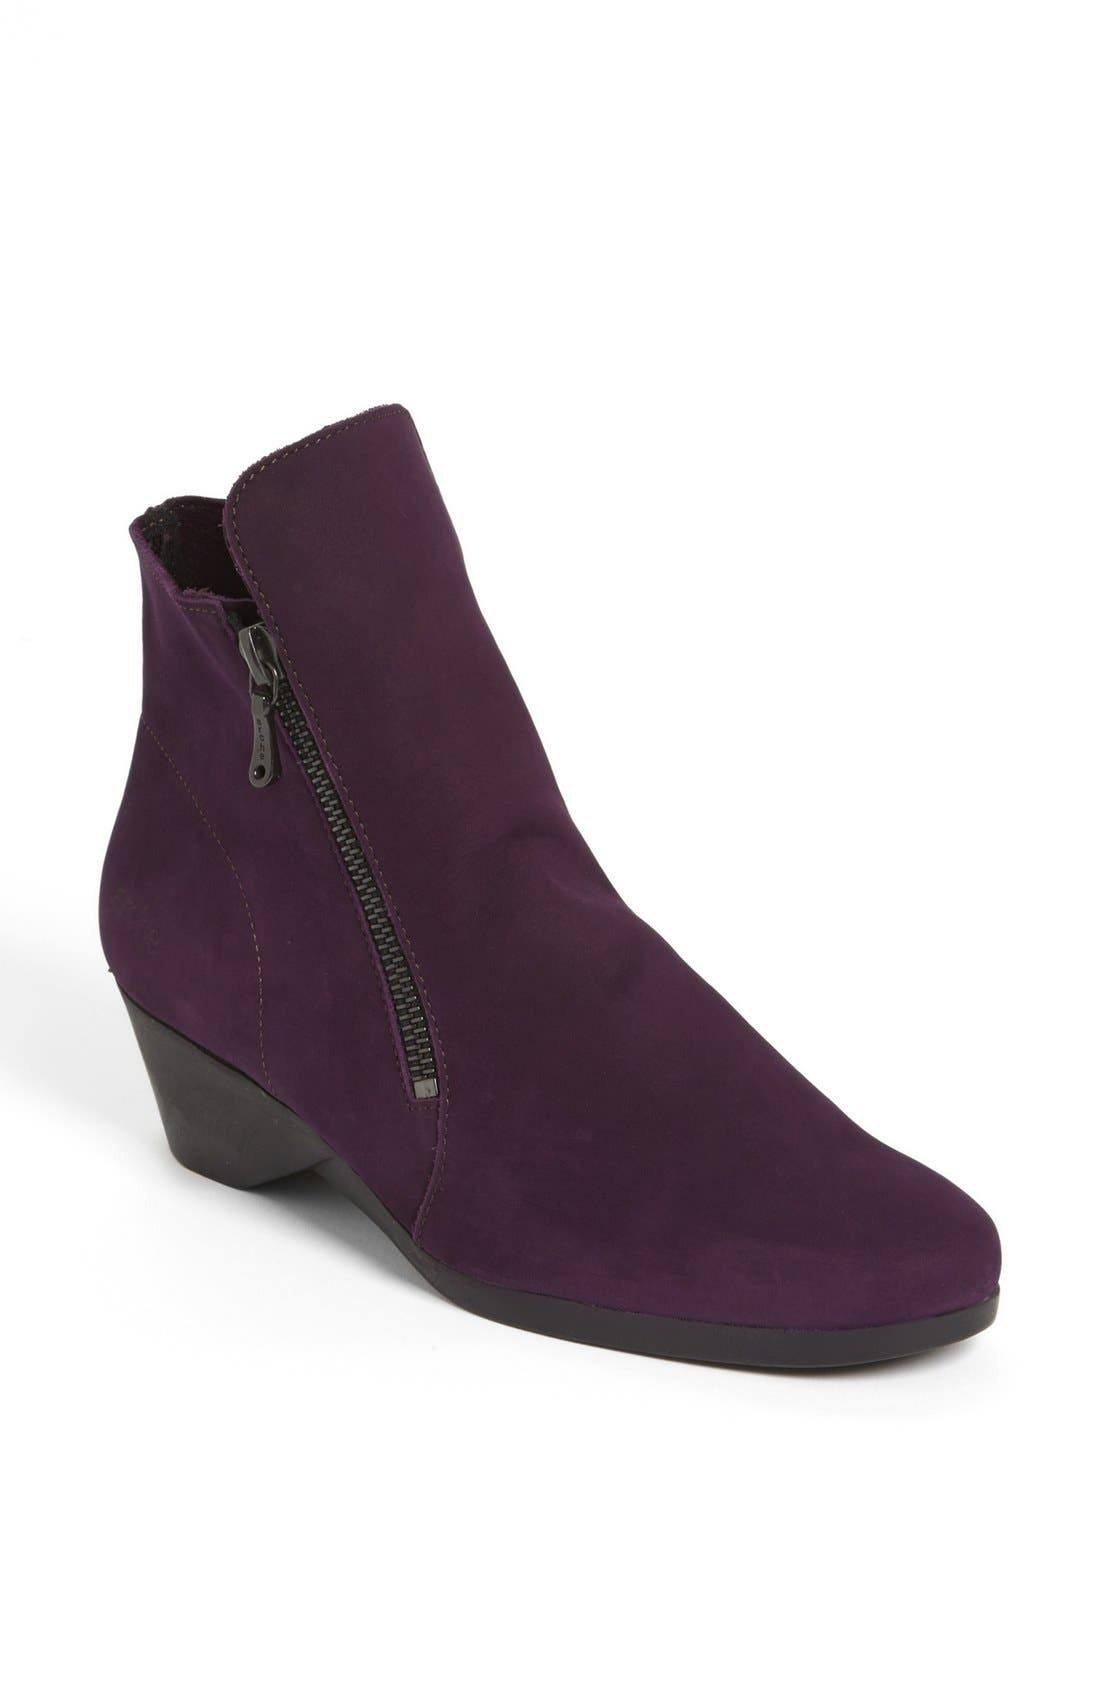 Alternate Image 1 Selected - Arche 'Eolie' Nubuck Bootie